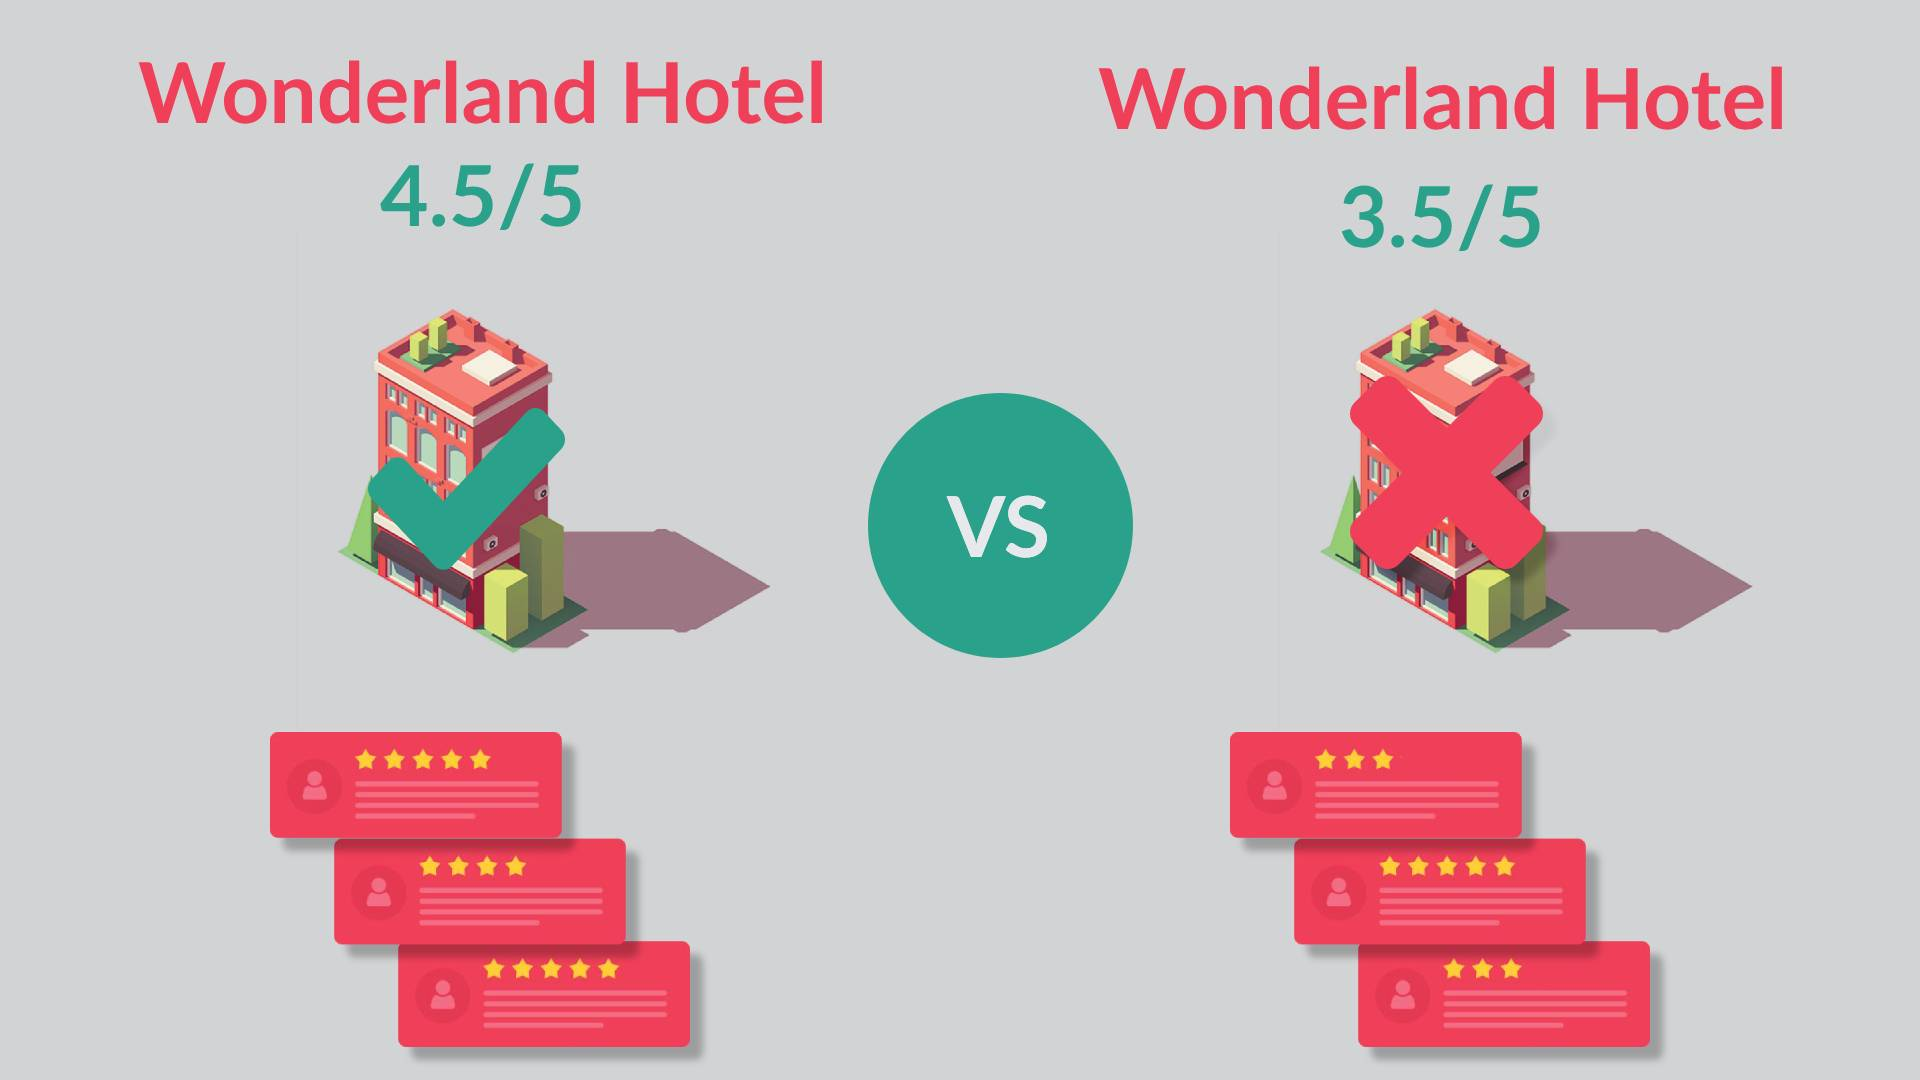 A Begginer's guide to Hotel Review Management